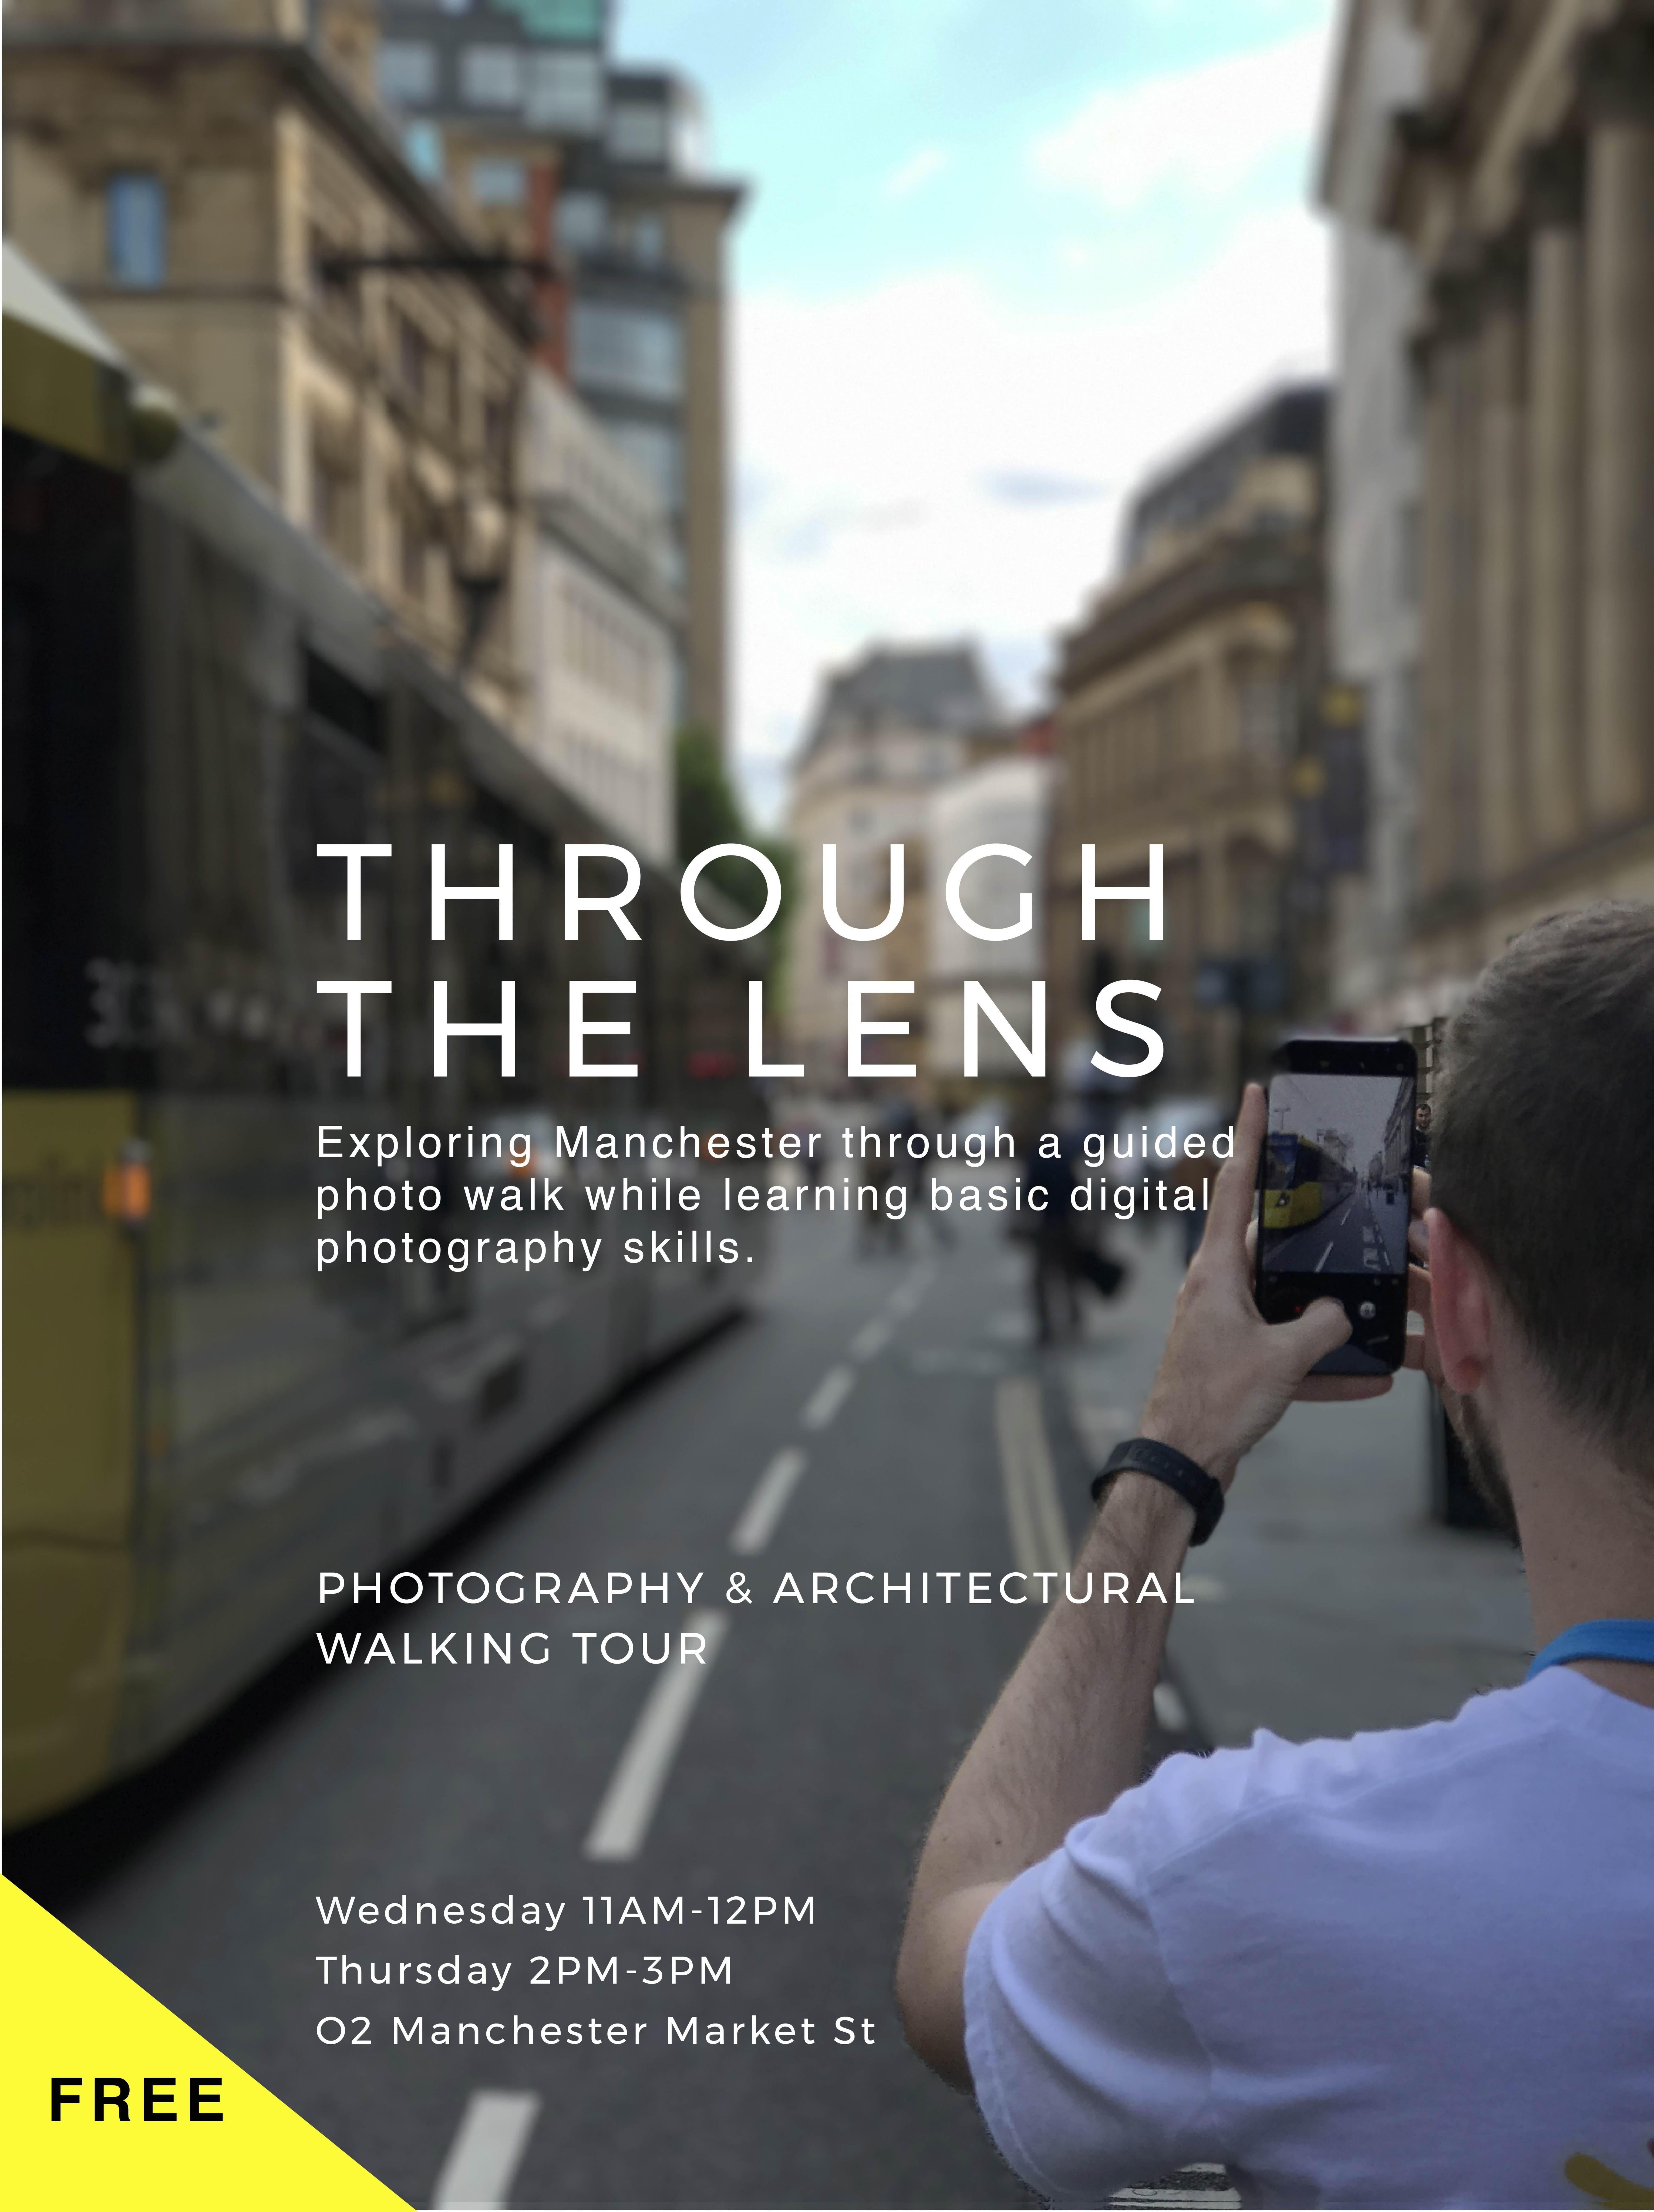 through the lens mcr free photography walking tour at o2 manchester